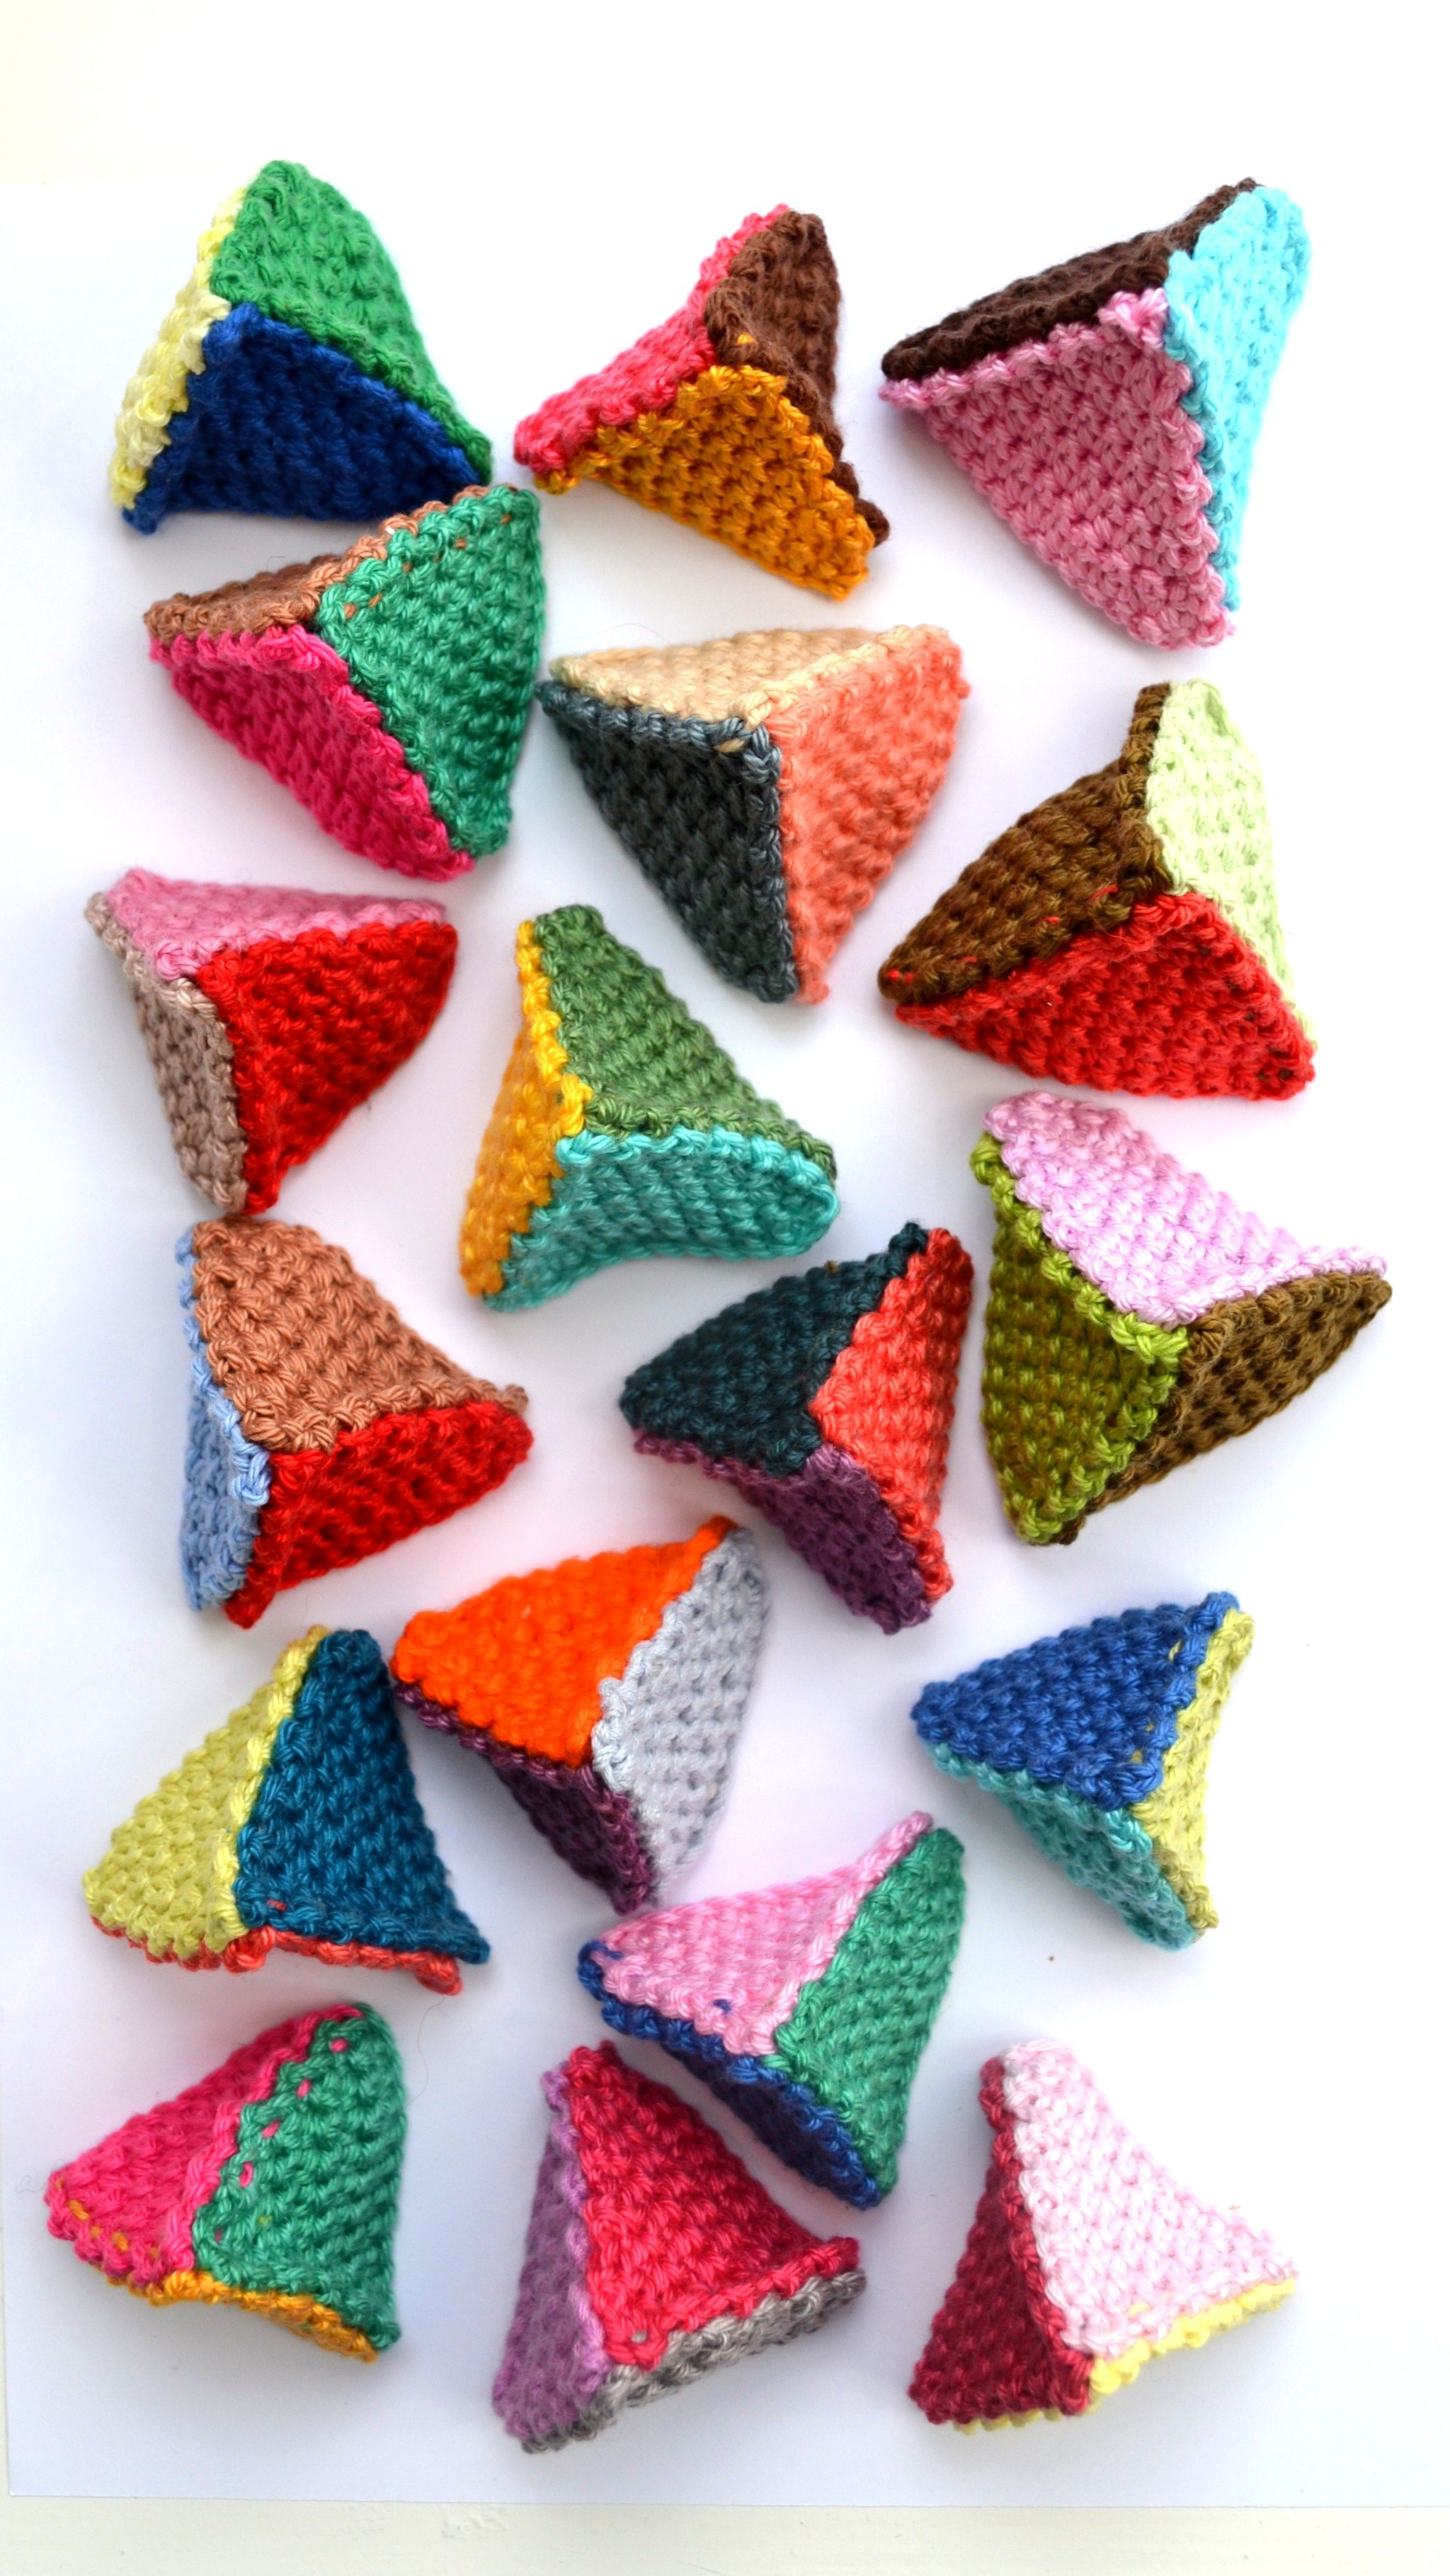 Crochet Triangles Cat Nip Inside They Like This Funny To Watch Not